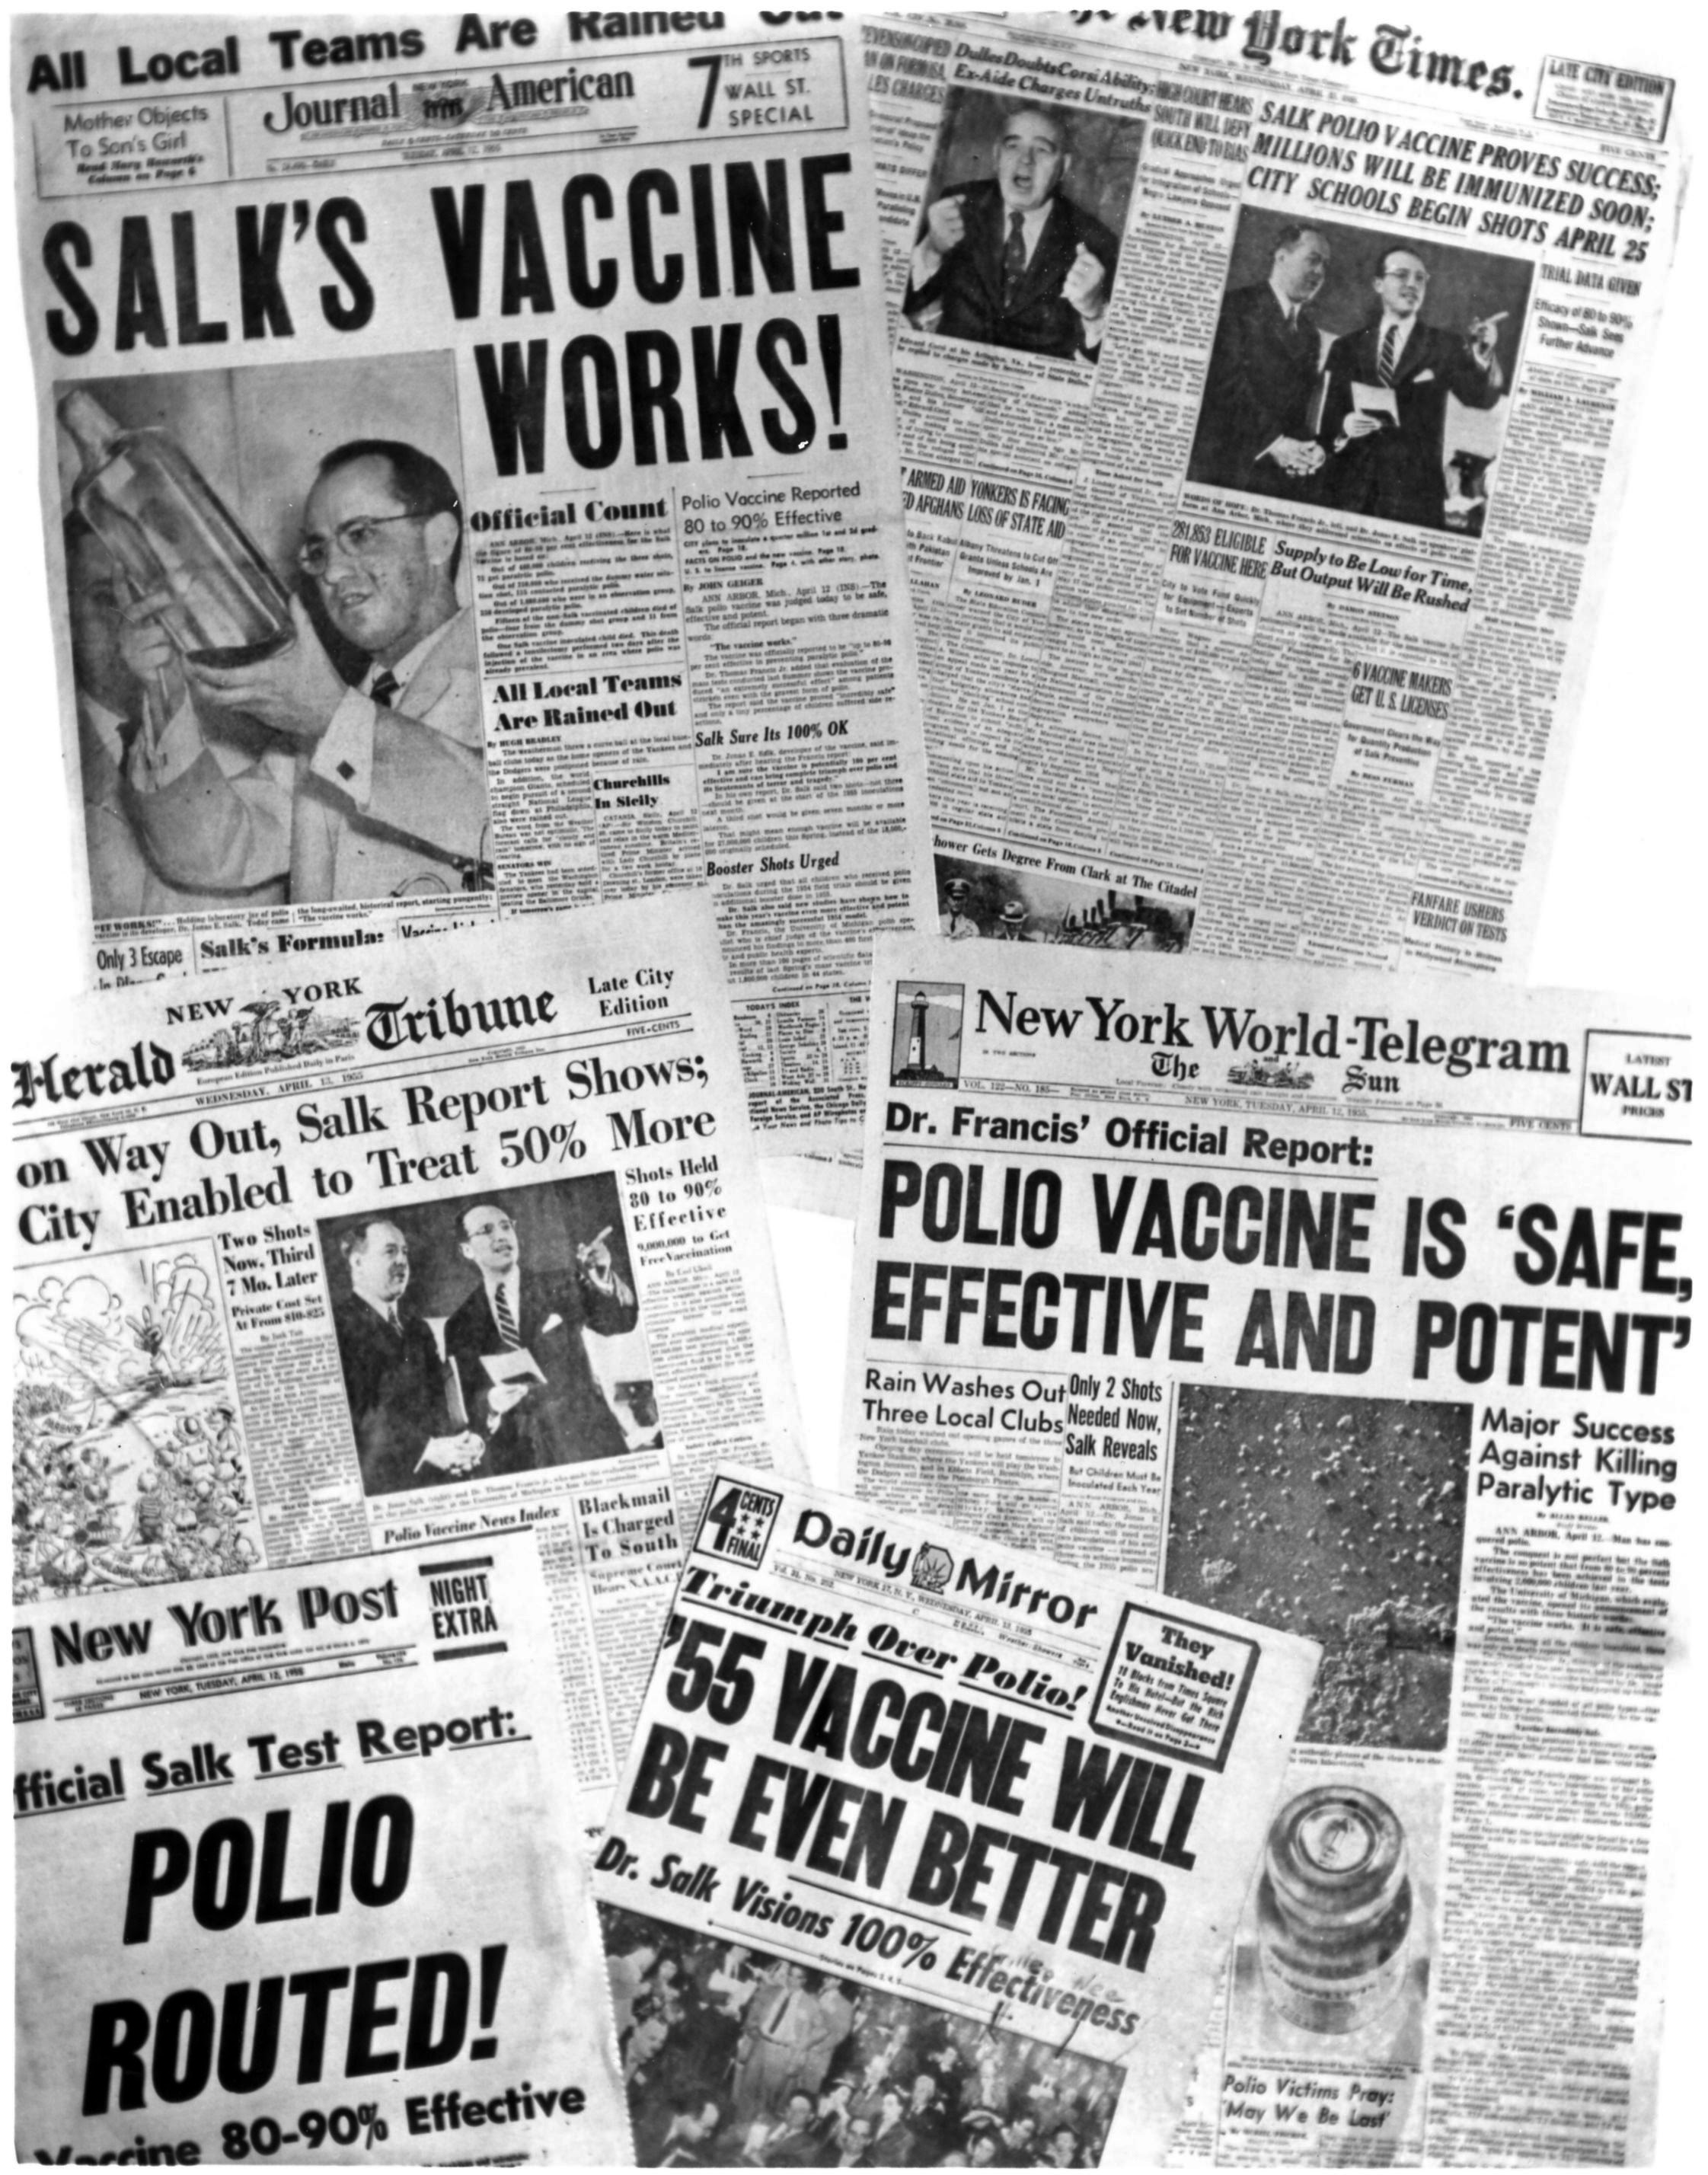 Dr. Salk's discovery of the polio vaccine made headlines the world over.